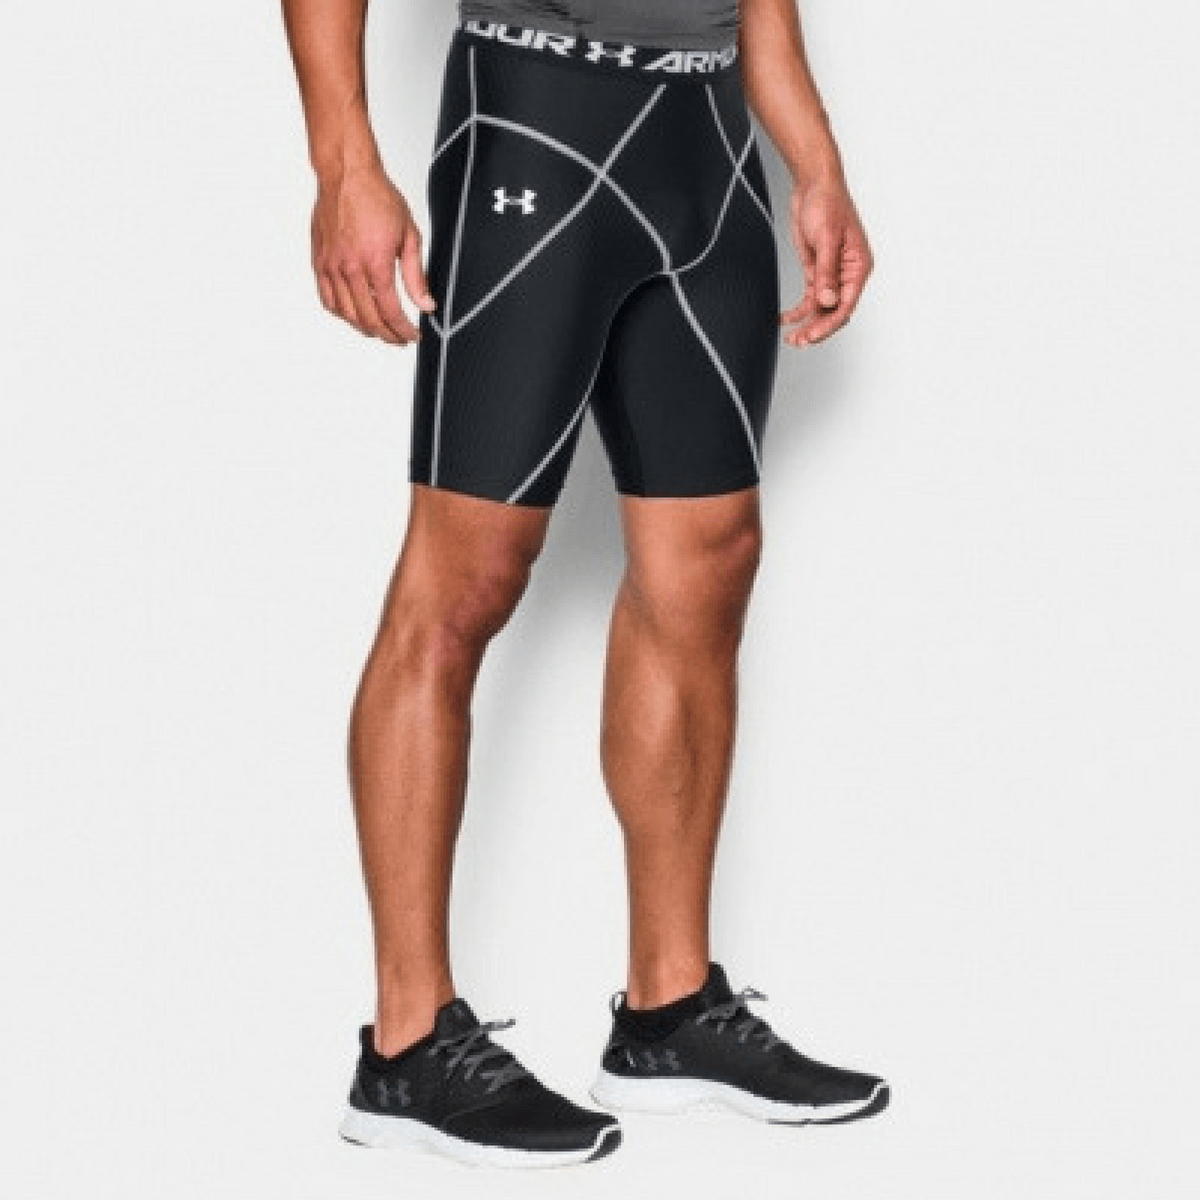 Under Armour Armour Core Short Black - M